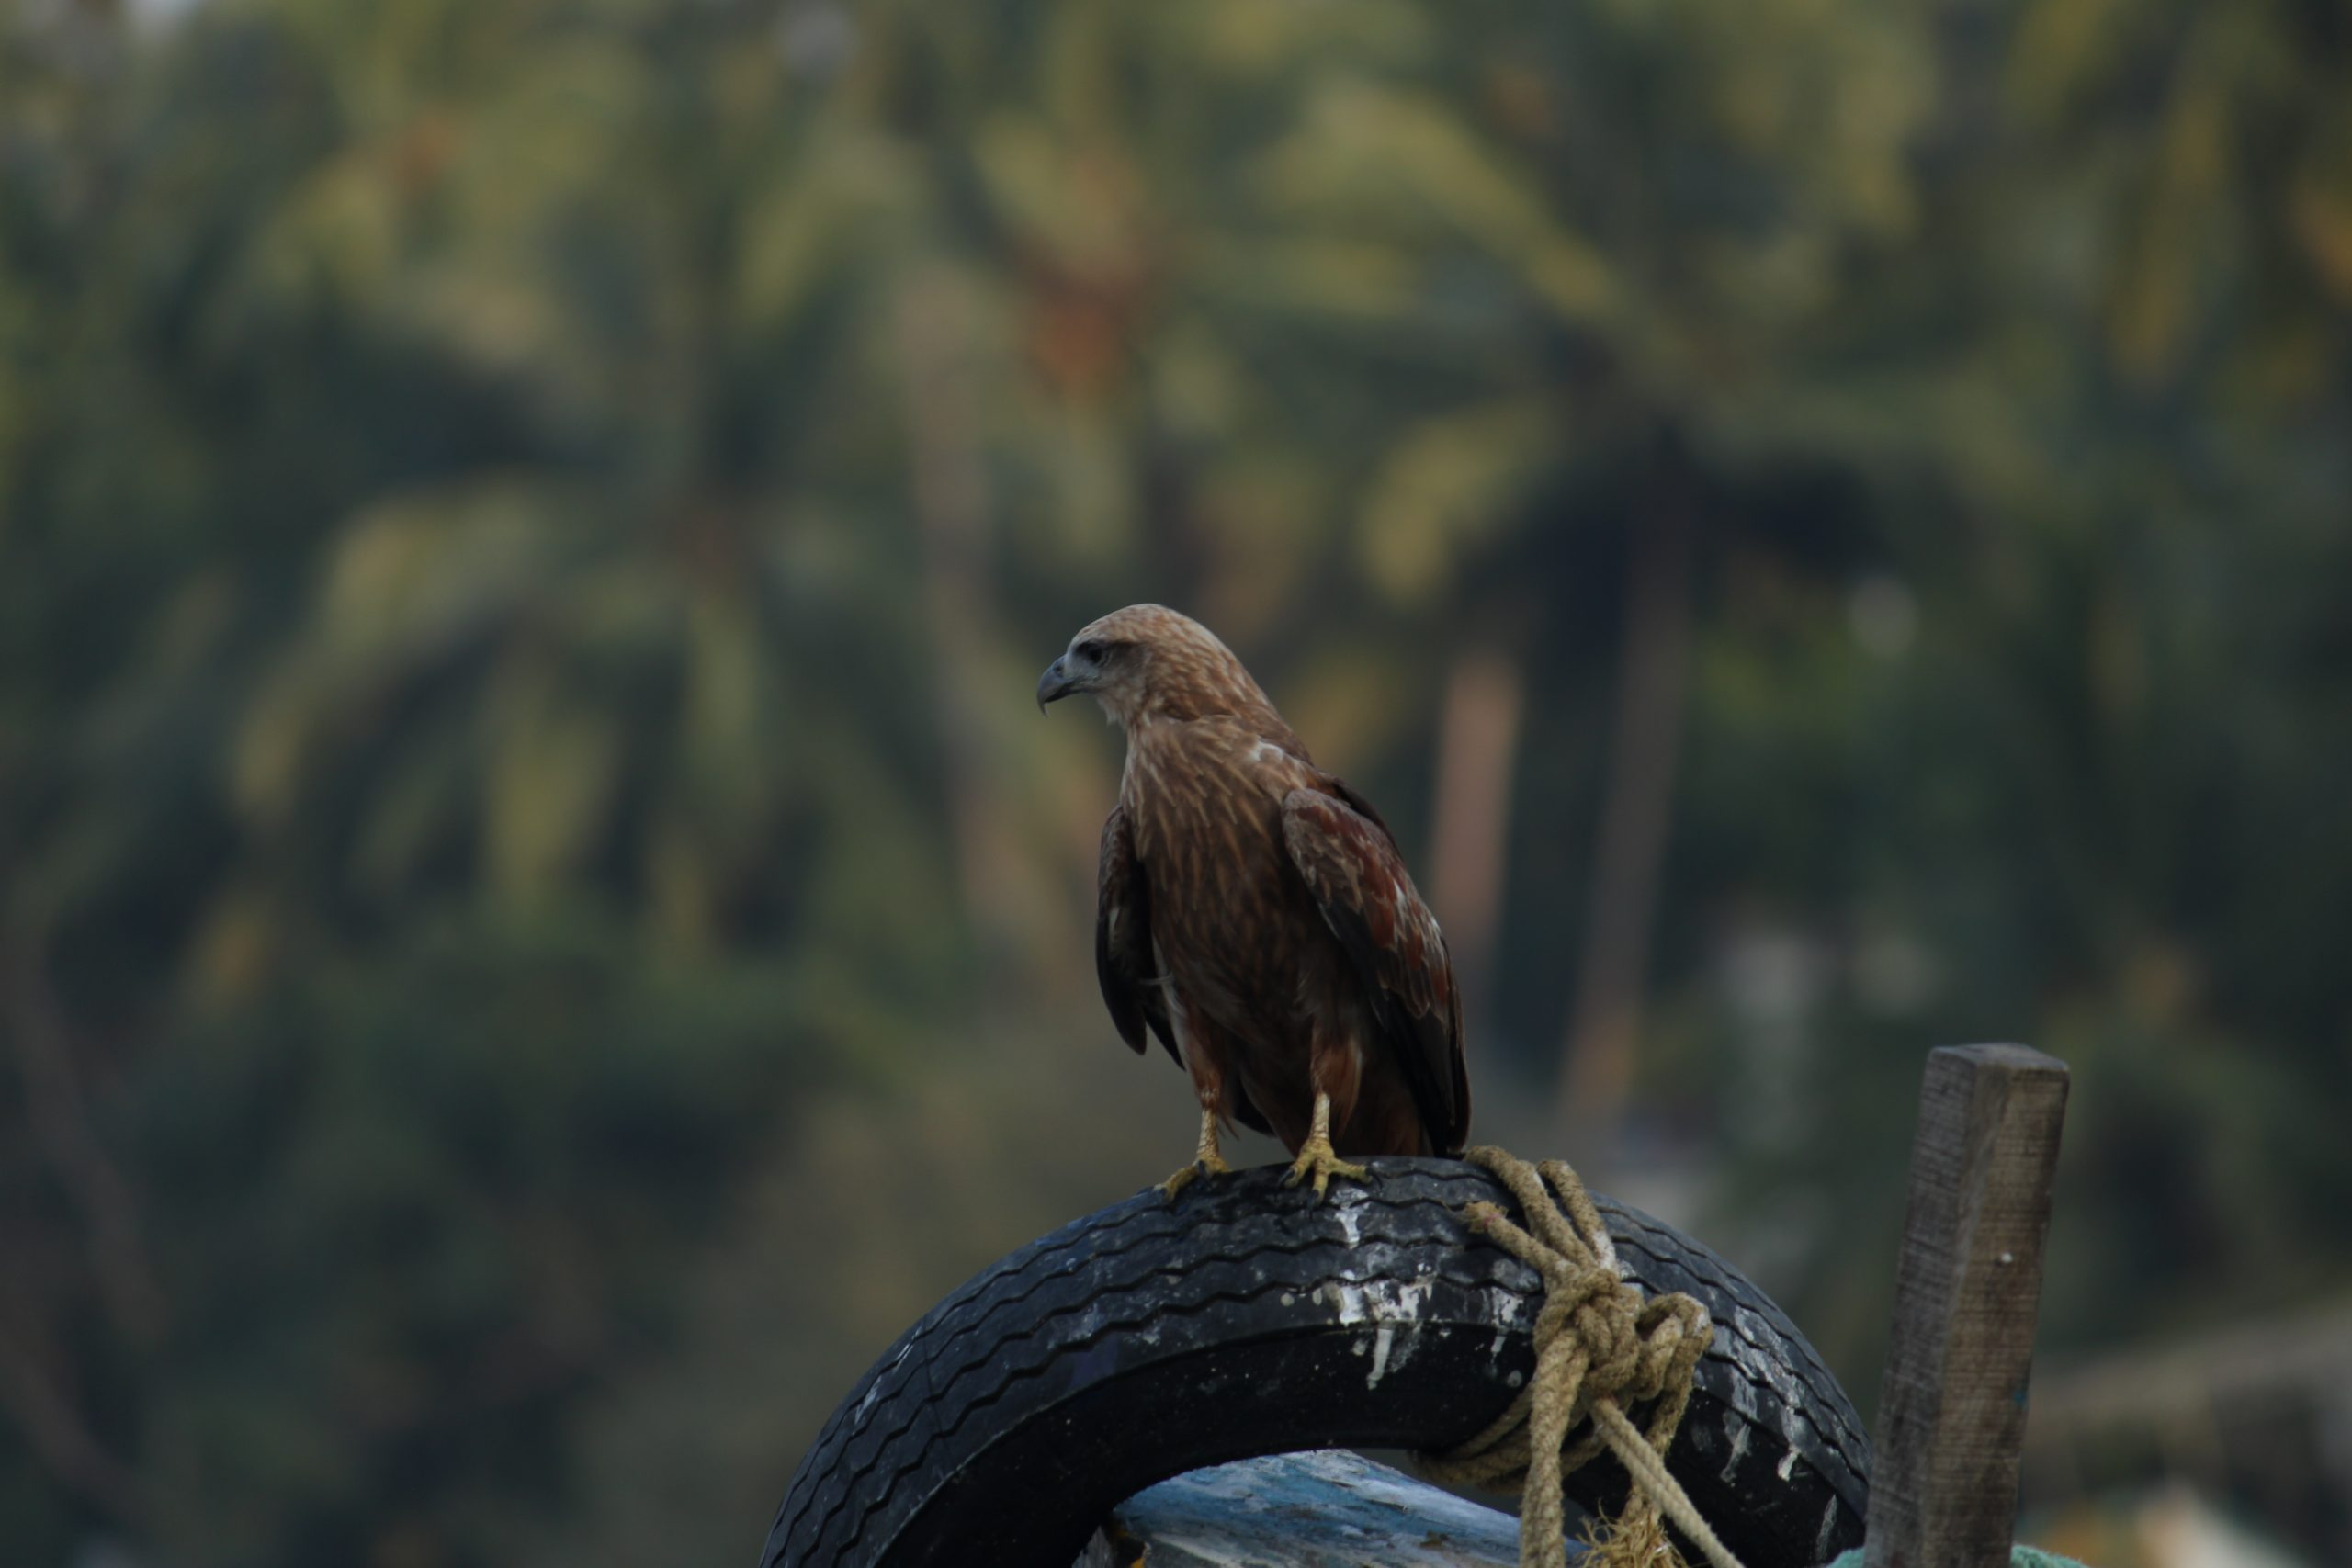 An eagle sitting on tire